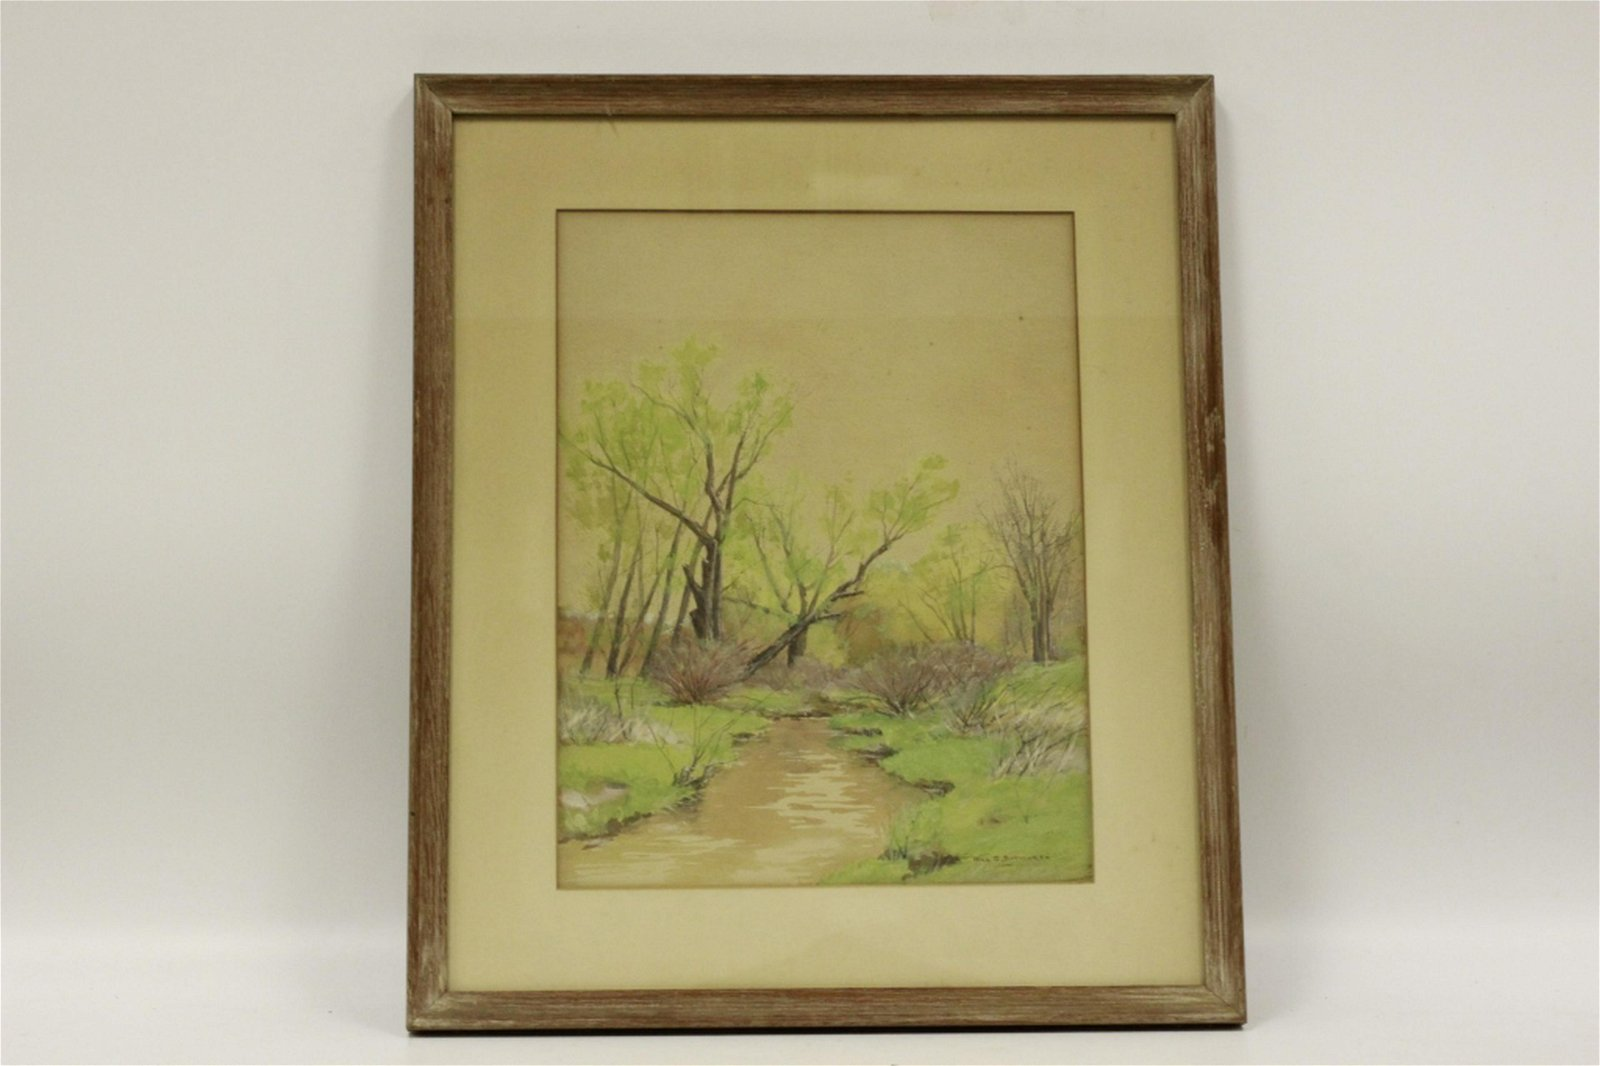 William Budworth, American (1861-1938) Water Color